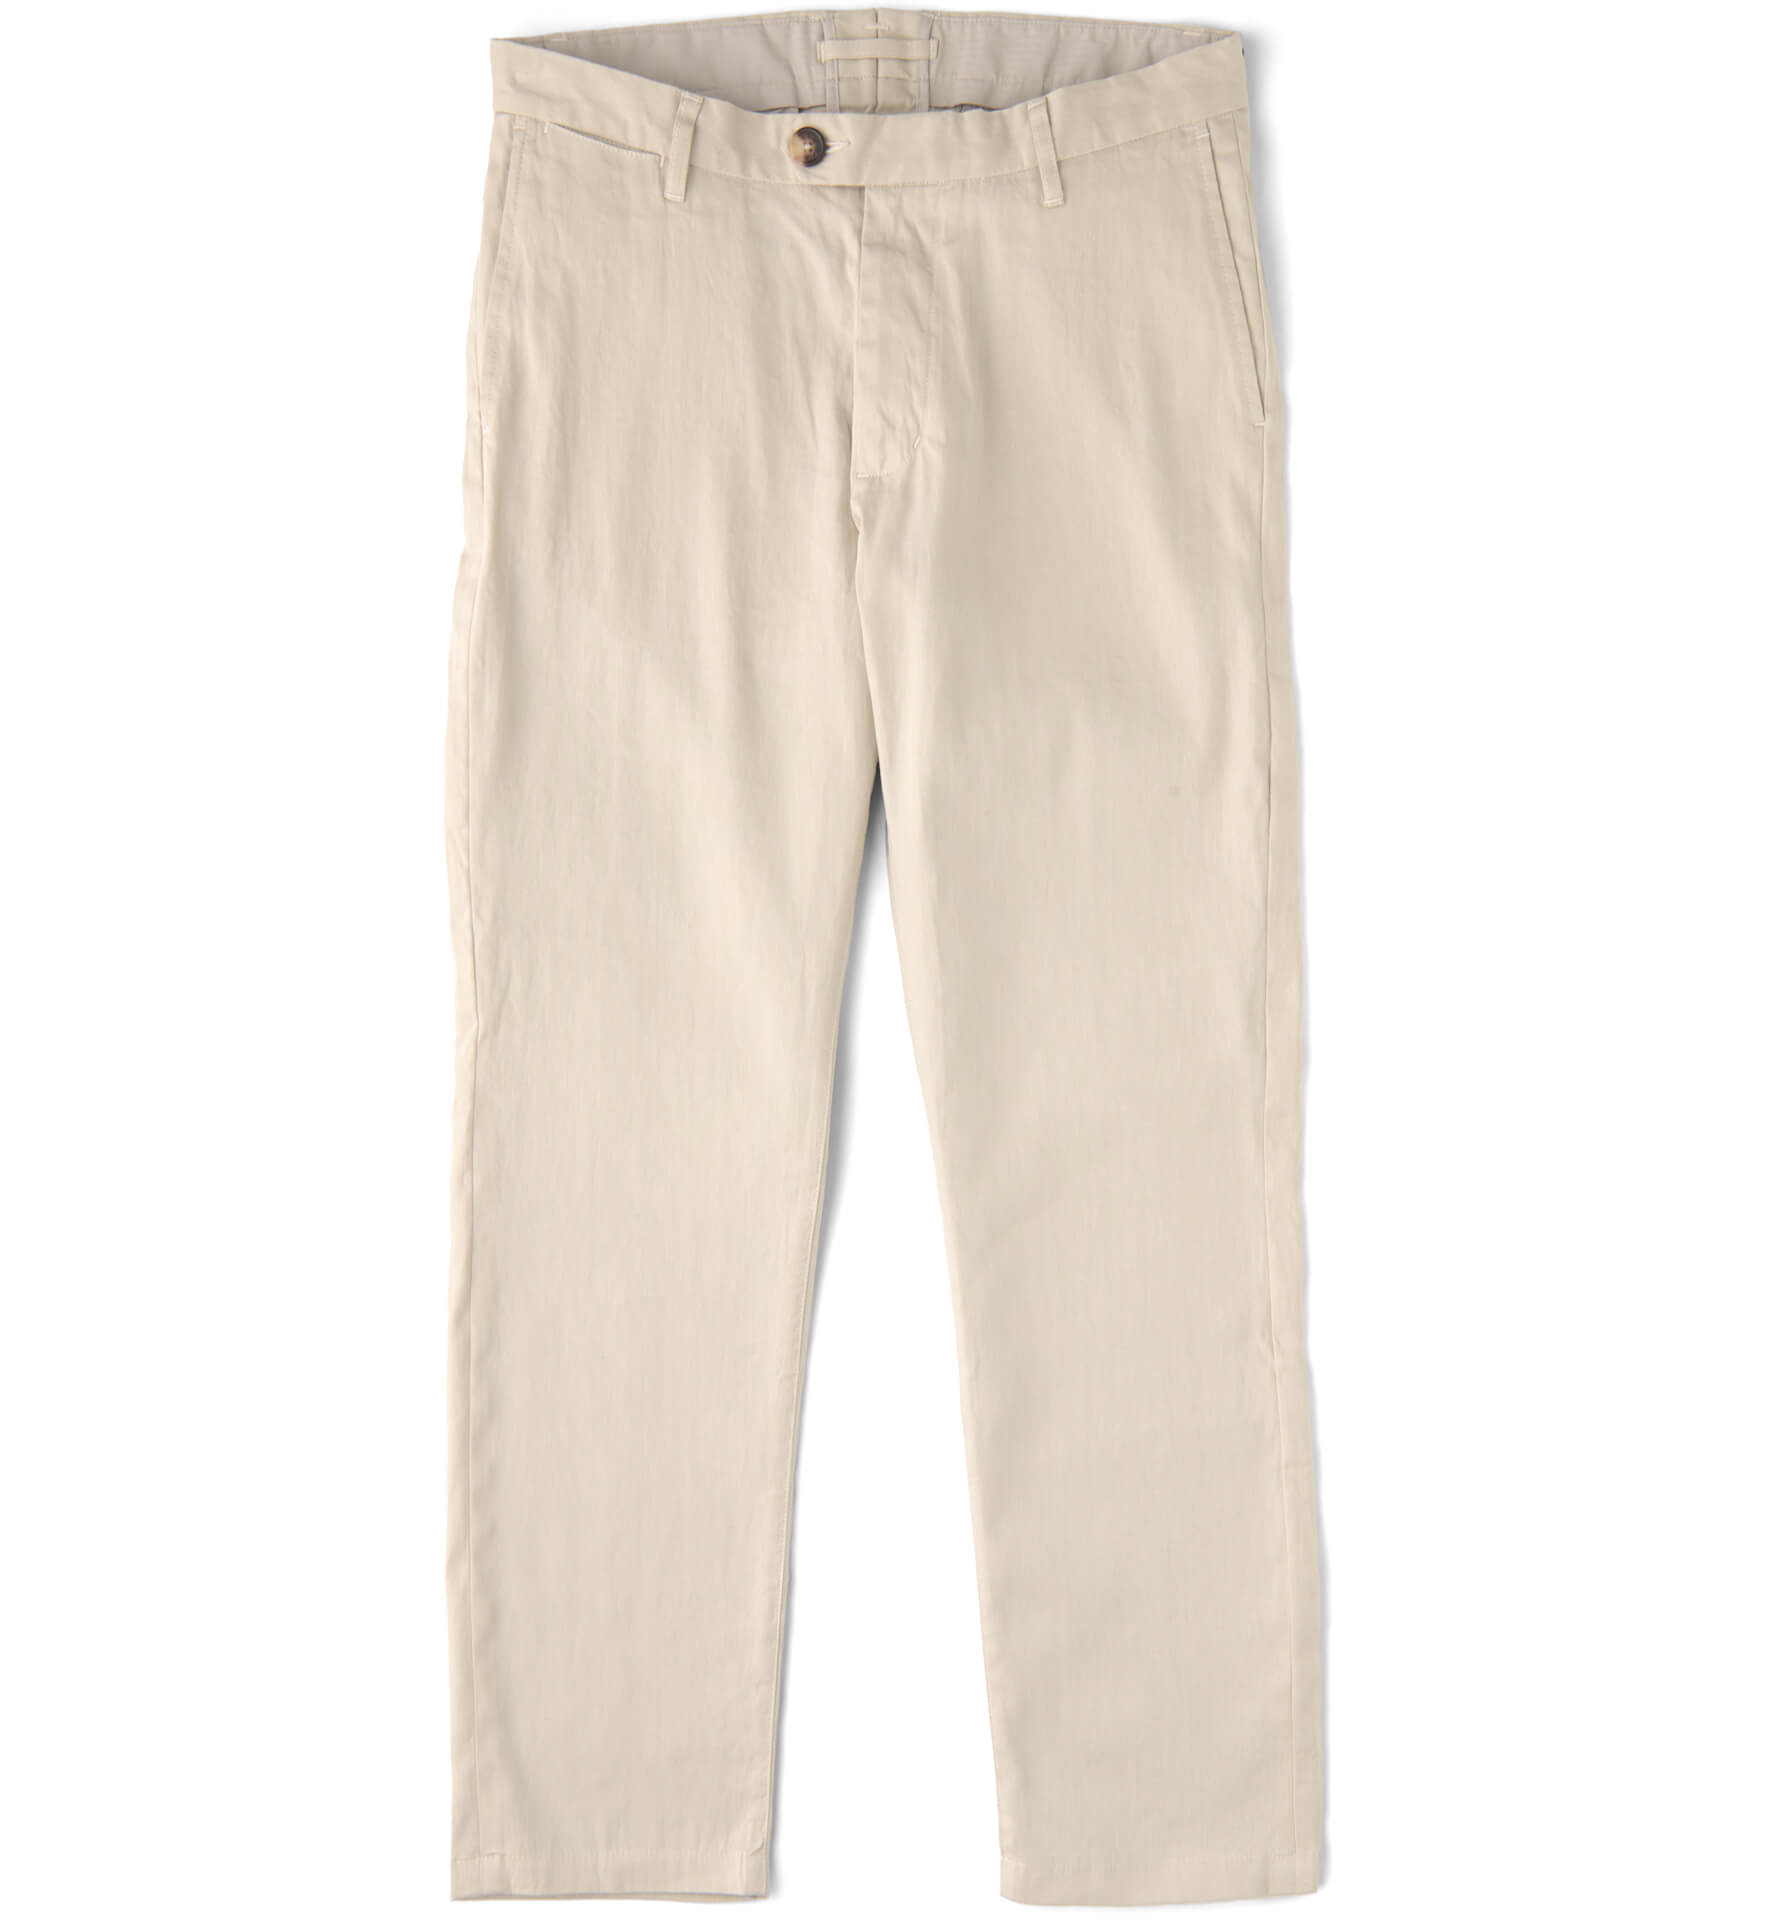 Zoom Image of Bowery Beige Stretch Linen Blend Chino